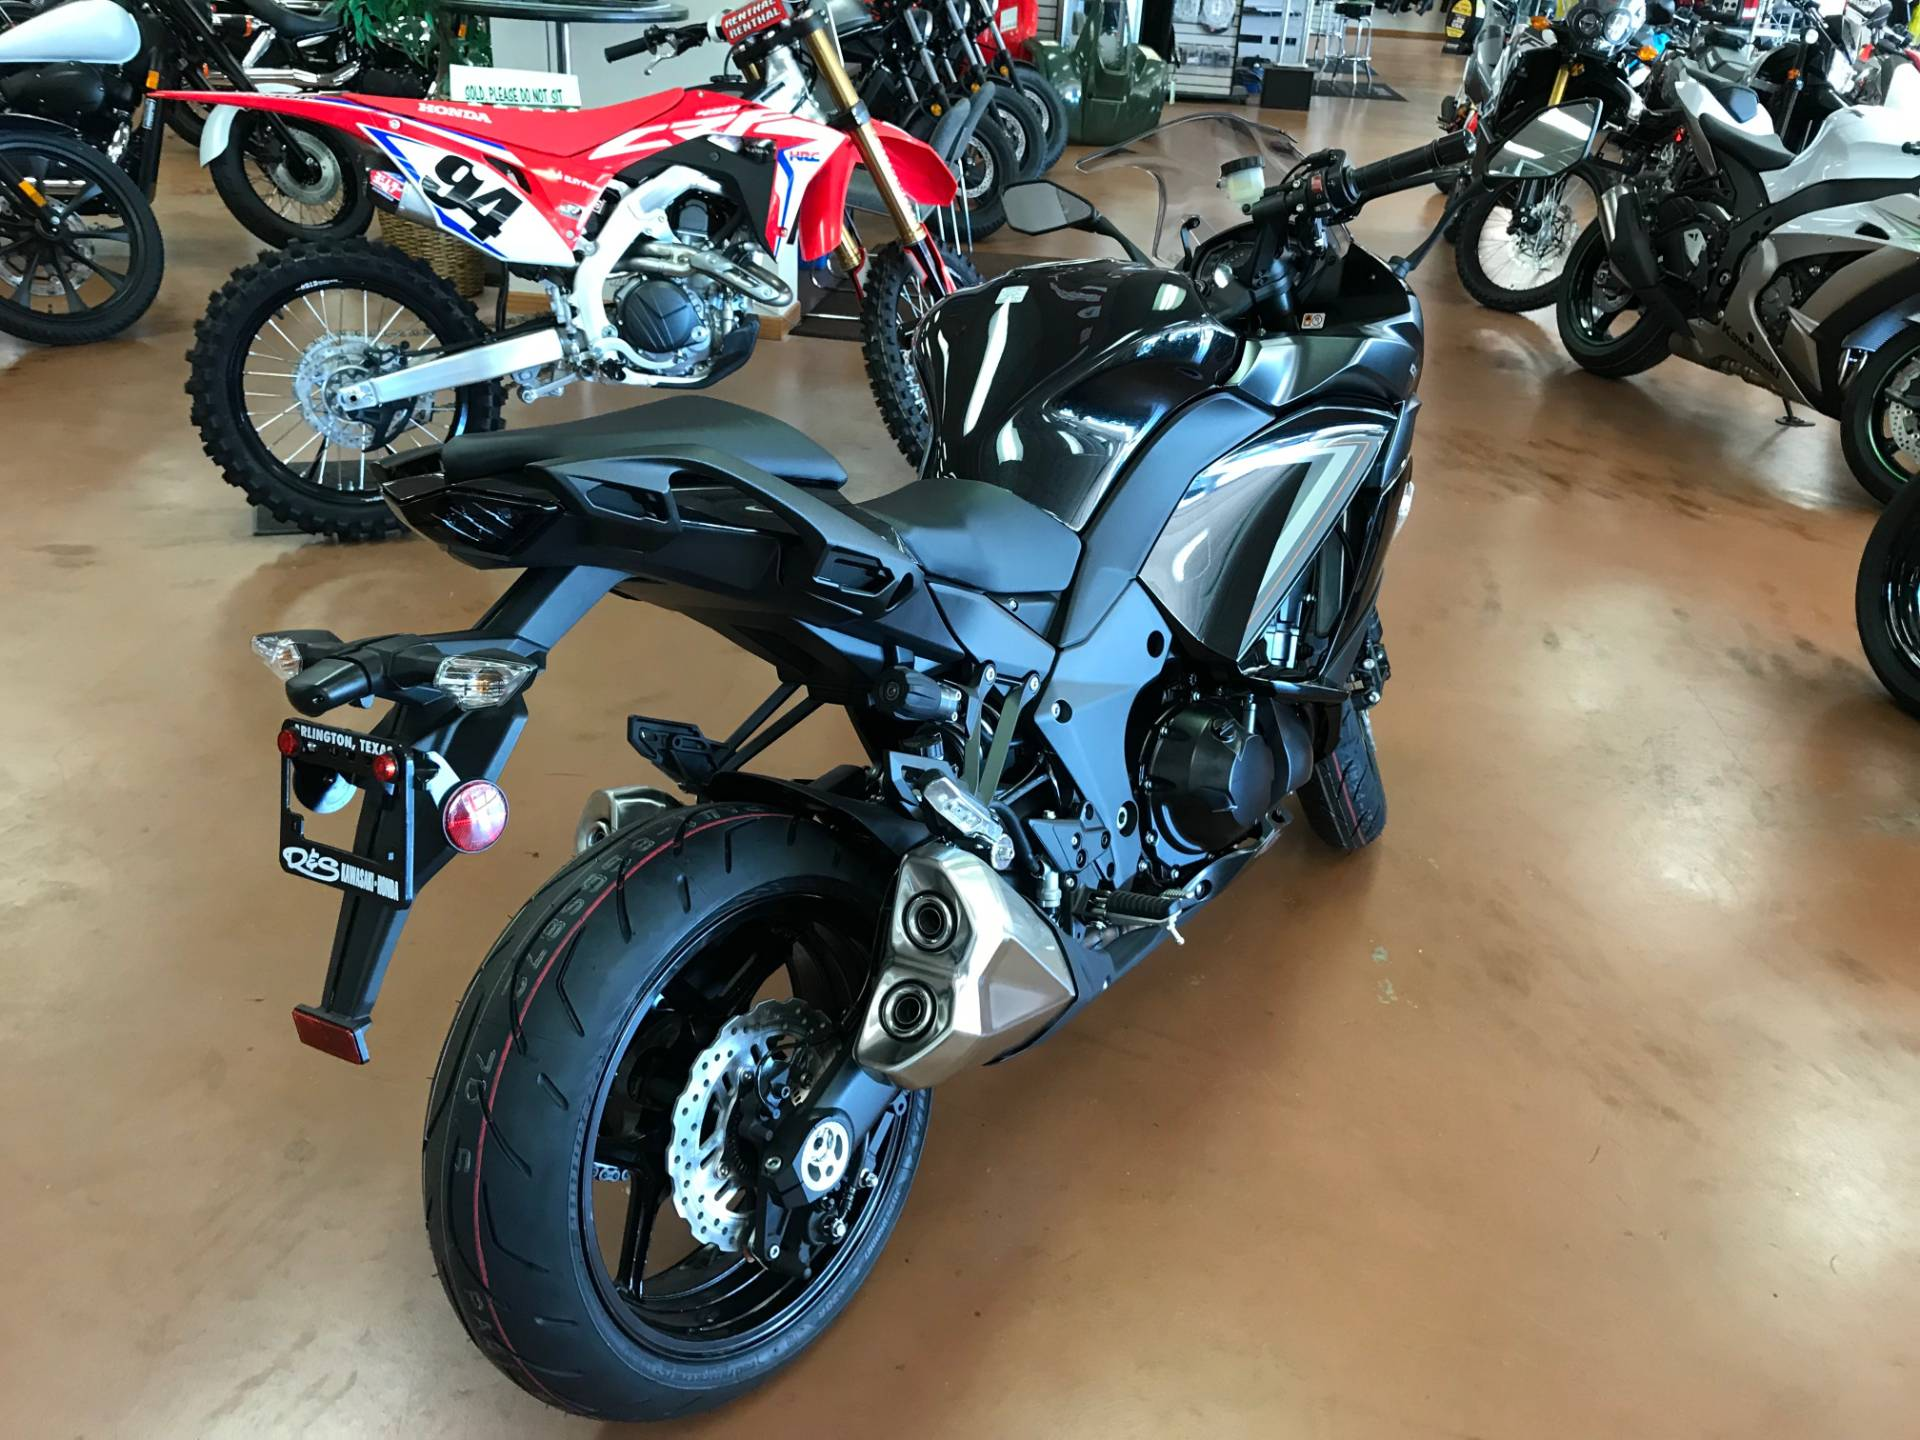 2019 Kawasaki NINJA 1000 ABS in Arlington, Texas - Photo 6